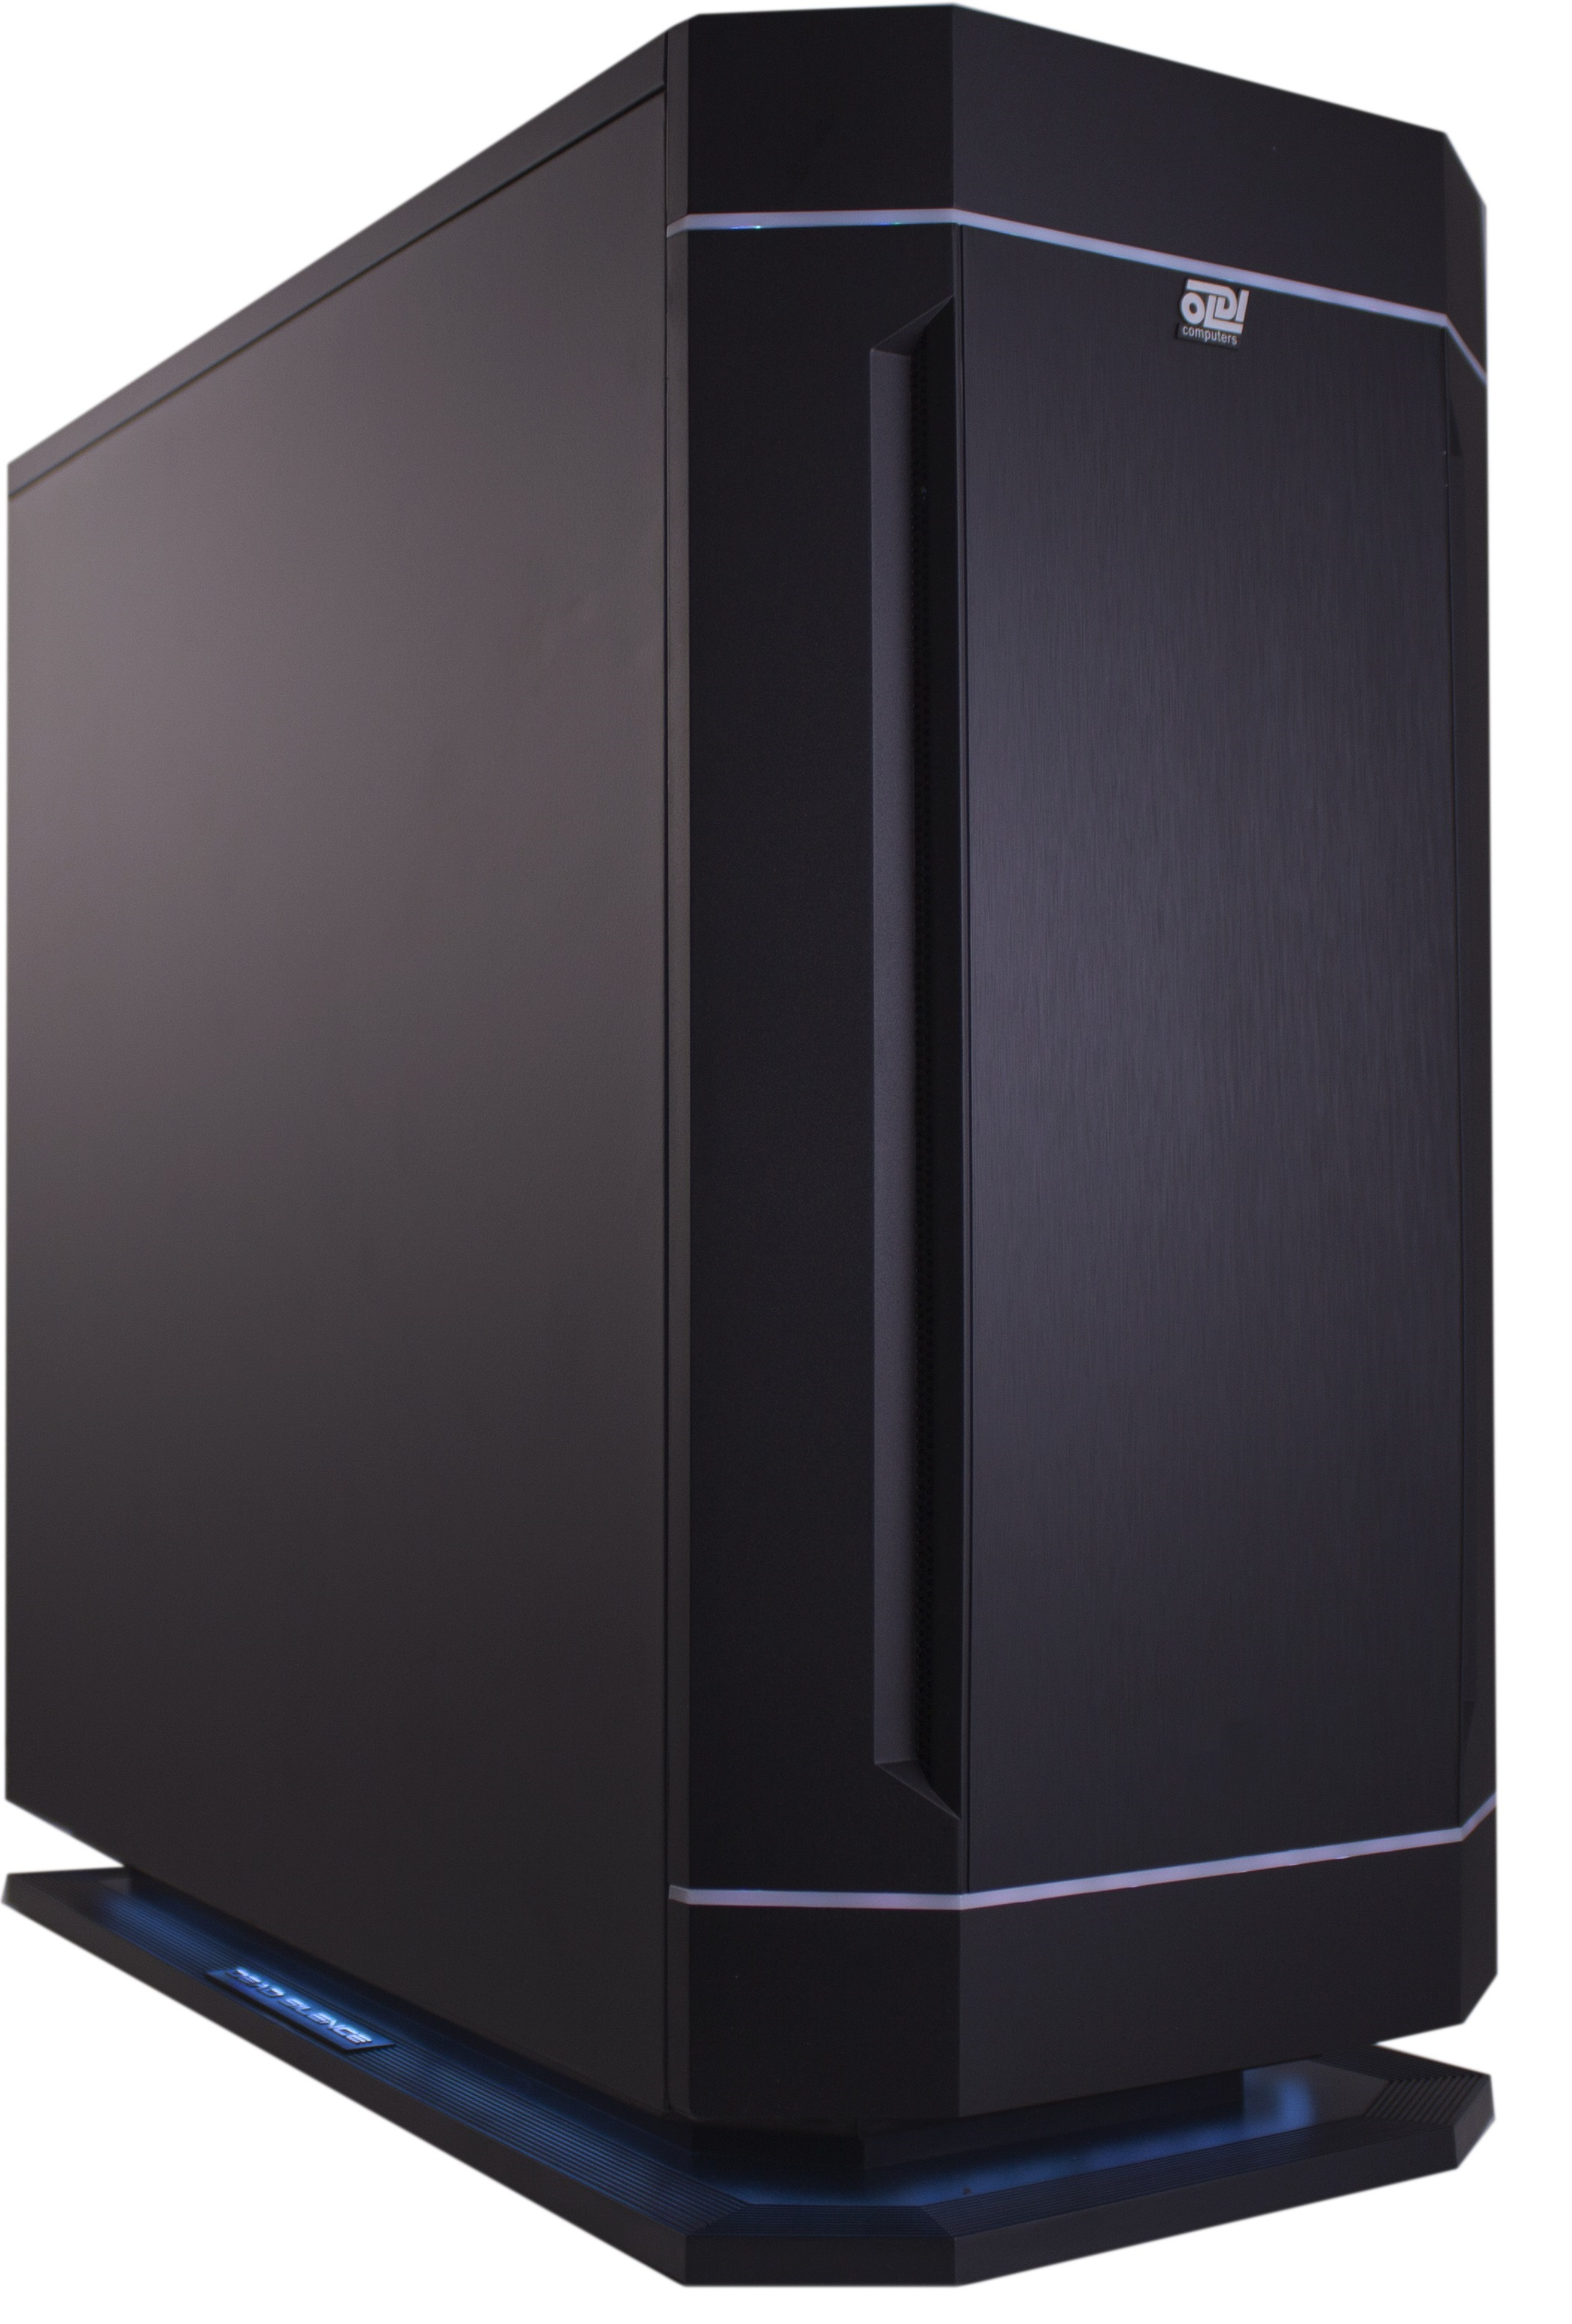 Компьютер OLDI COMPUTERS GRAPHIC STATION P5000 Системный блок Black/ i7-8700K/Z370/64Gb/512Gb SSD/2*4Tb/16Gb P5000/700W/Win 10 Pro 64-bit pro 2 pcs black